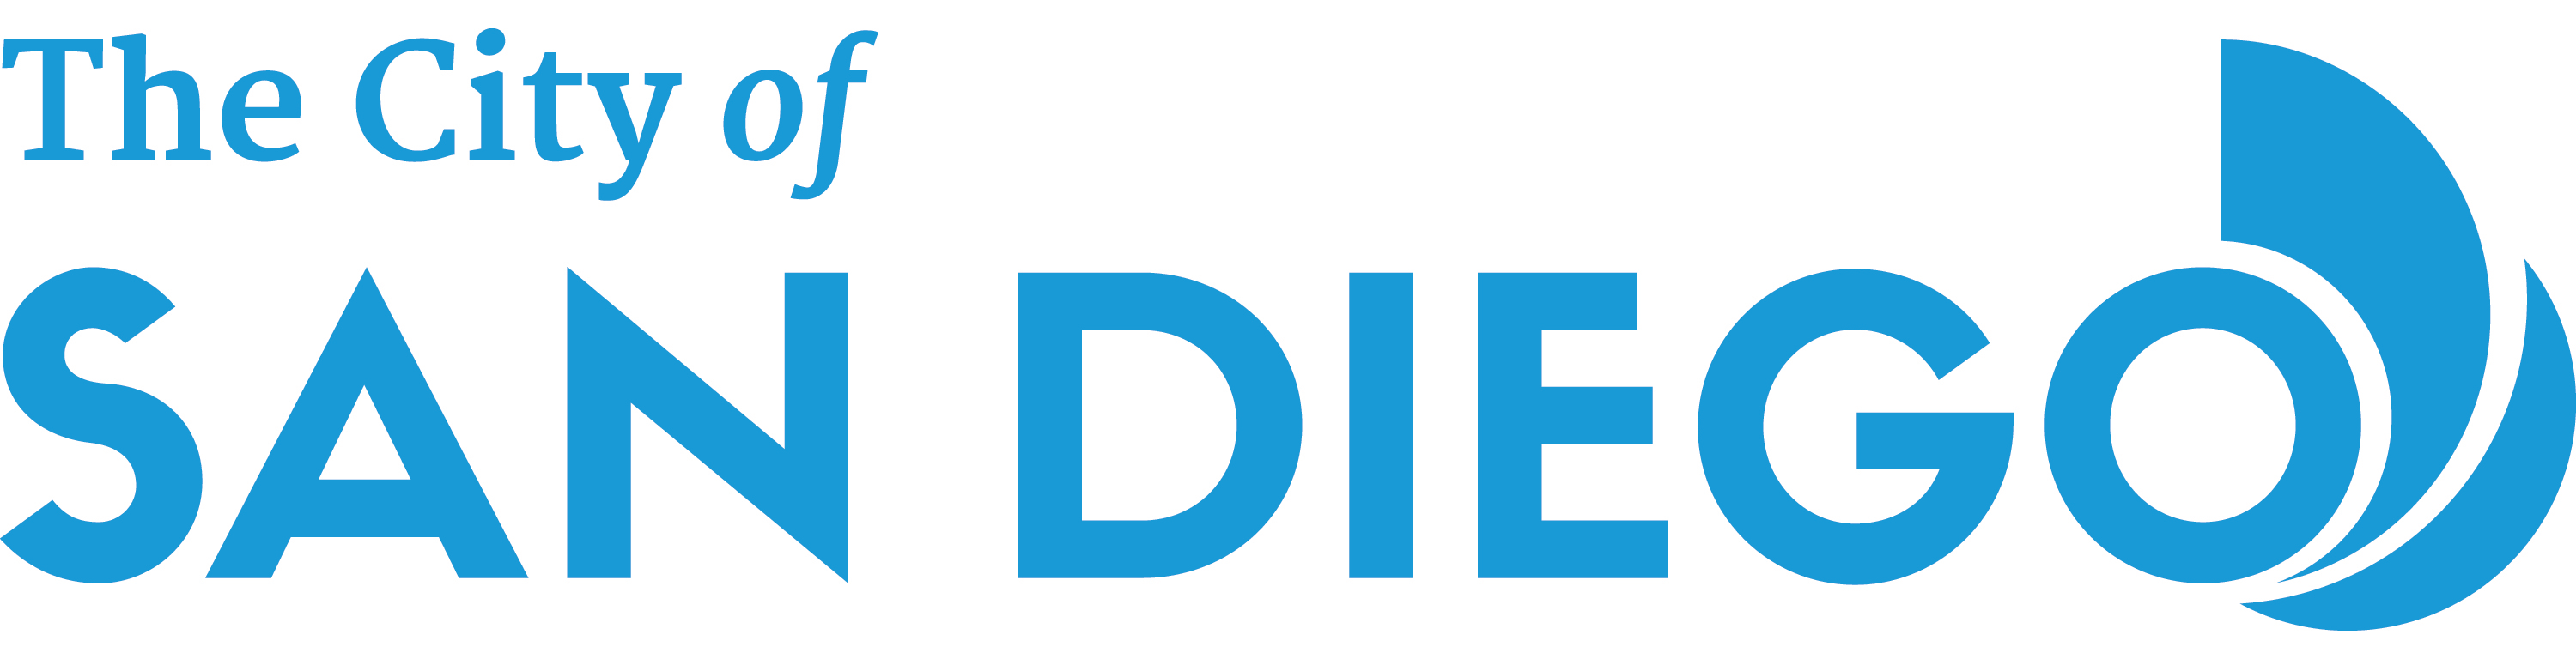 CITY-OF-SAN-DIEGO-logo.png